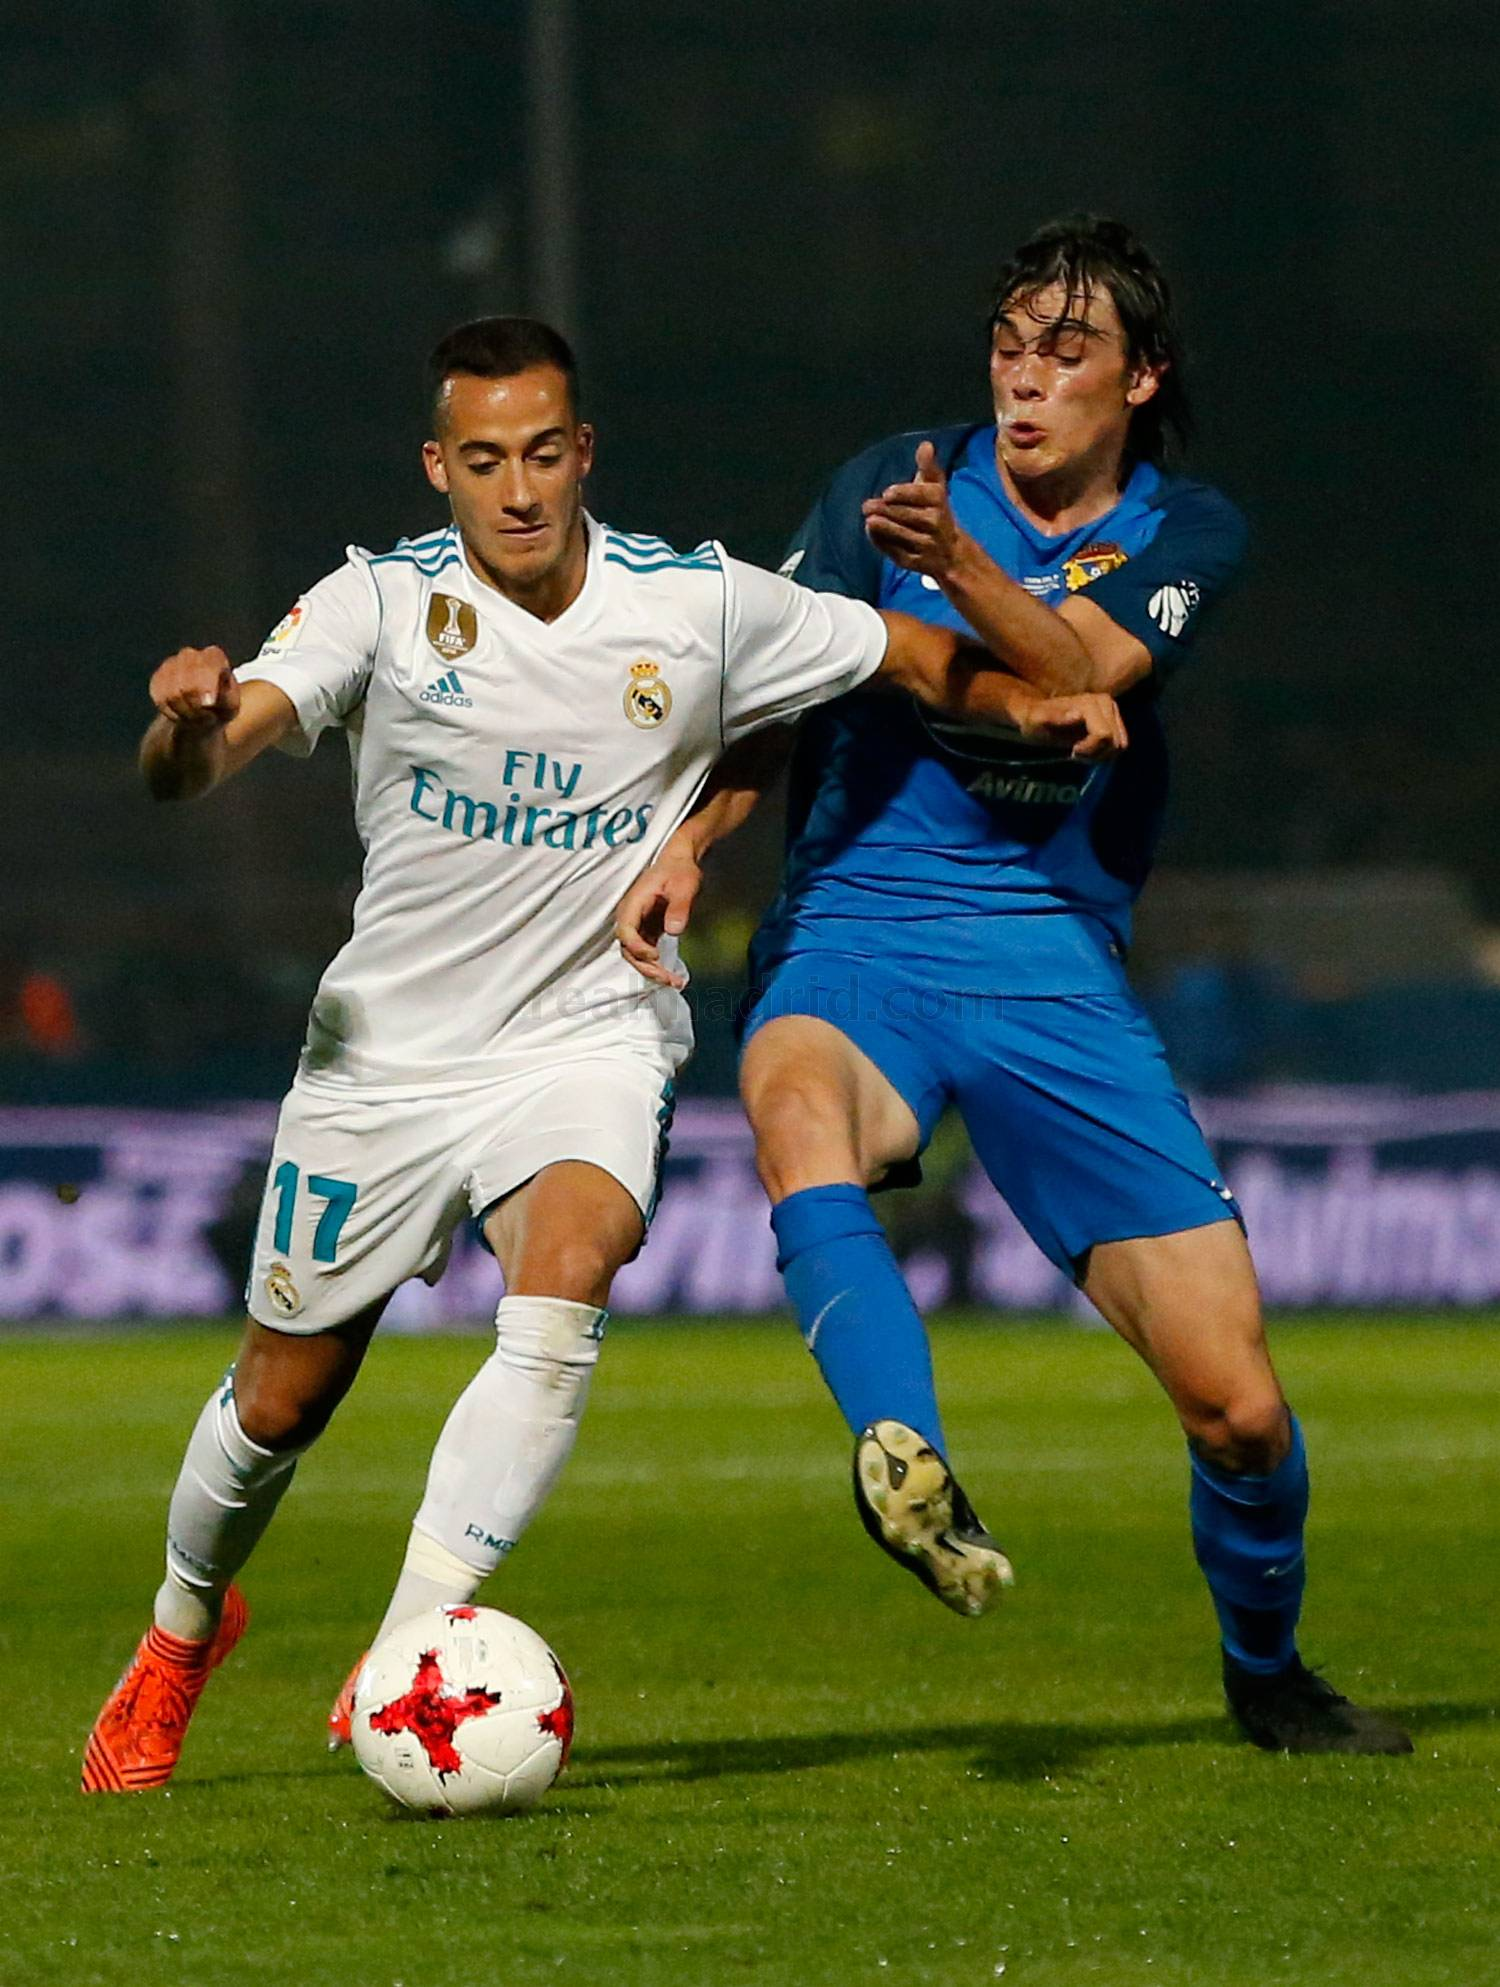 Real Madrid - Fuenlabrada - Real Madrid - 26-10-2017